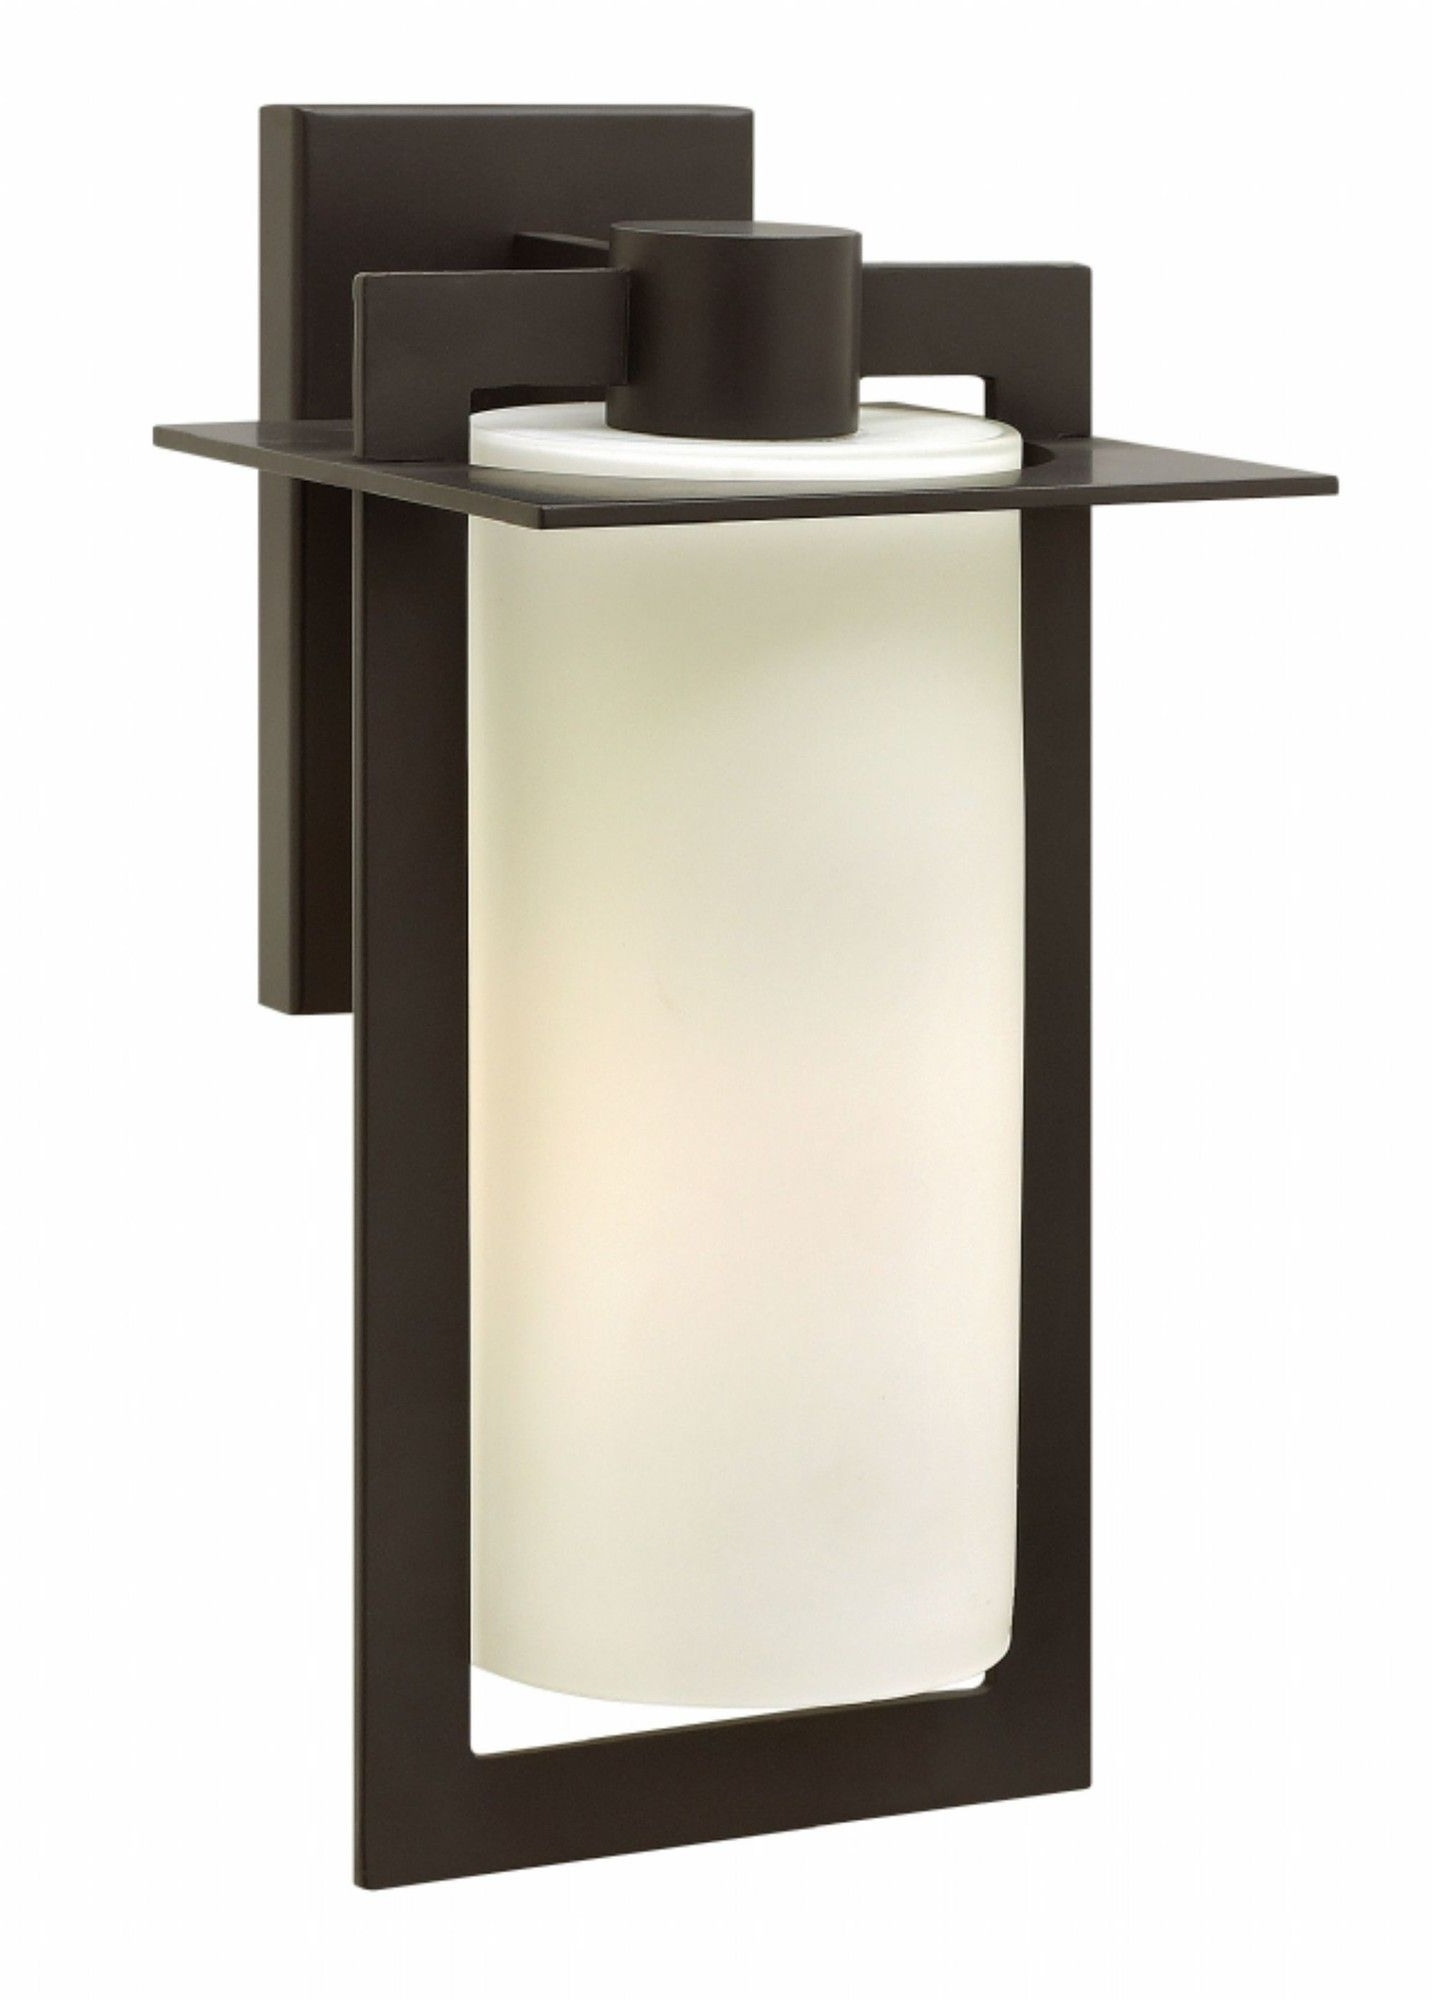 Colfax 1 Light Outdoor Wall Lantern (Gallery 5 of 20)